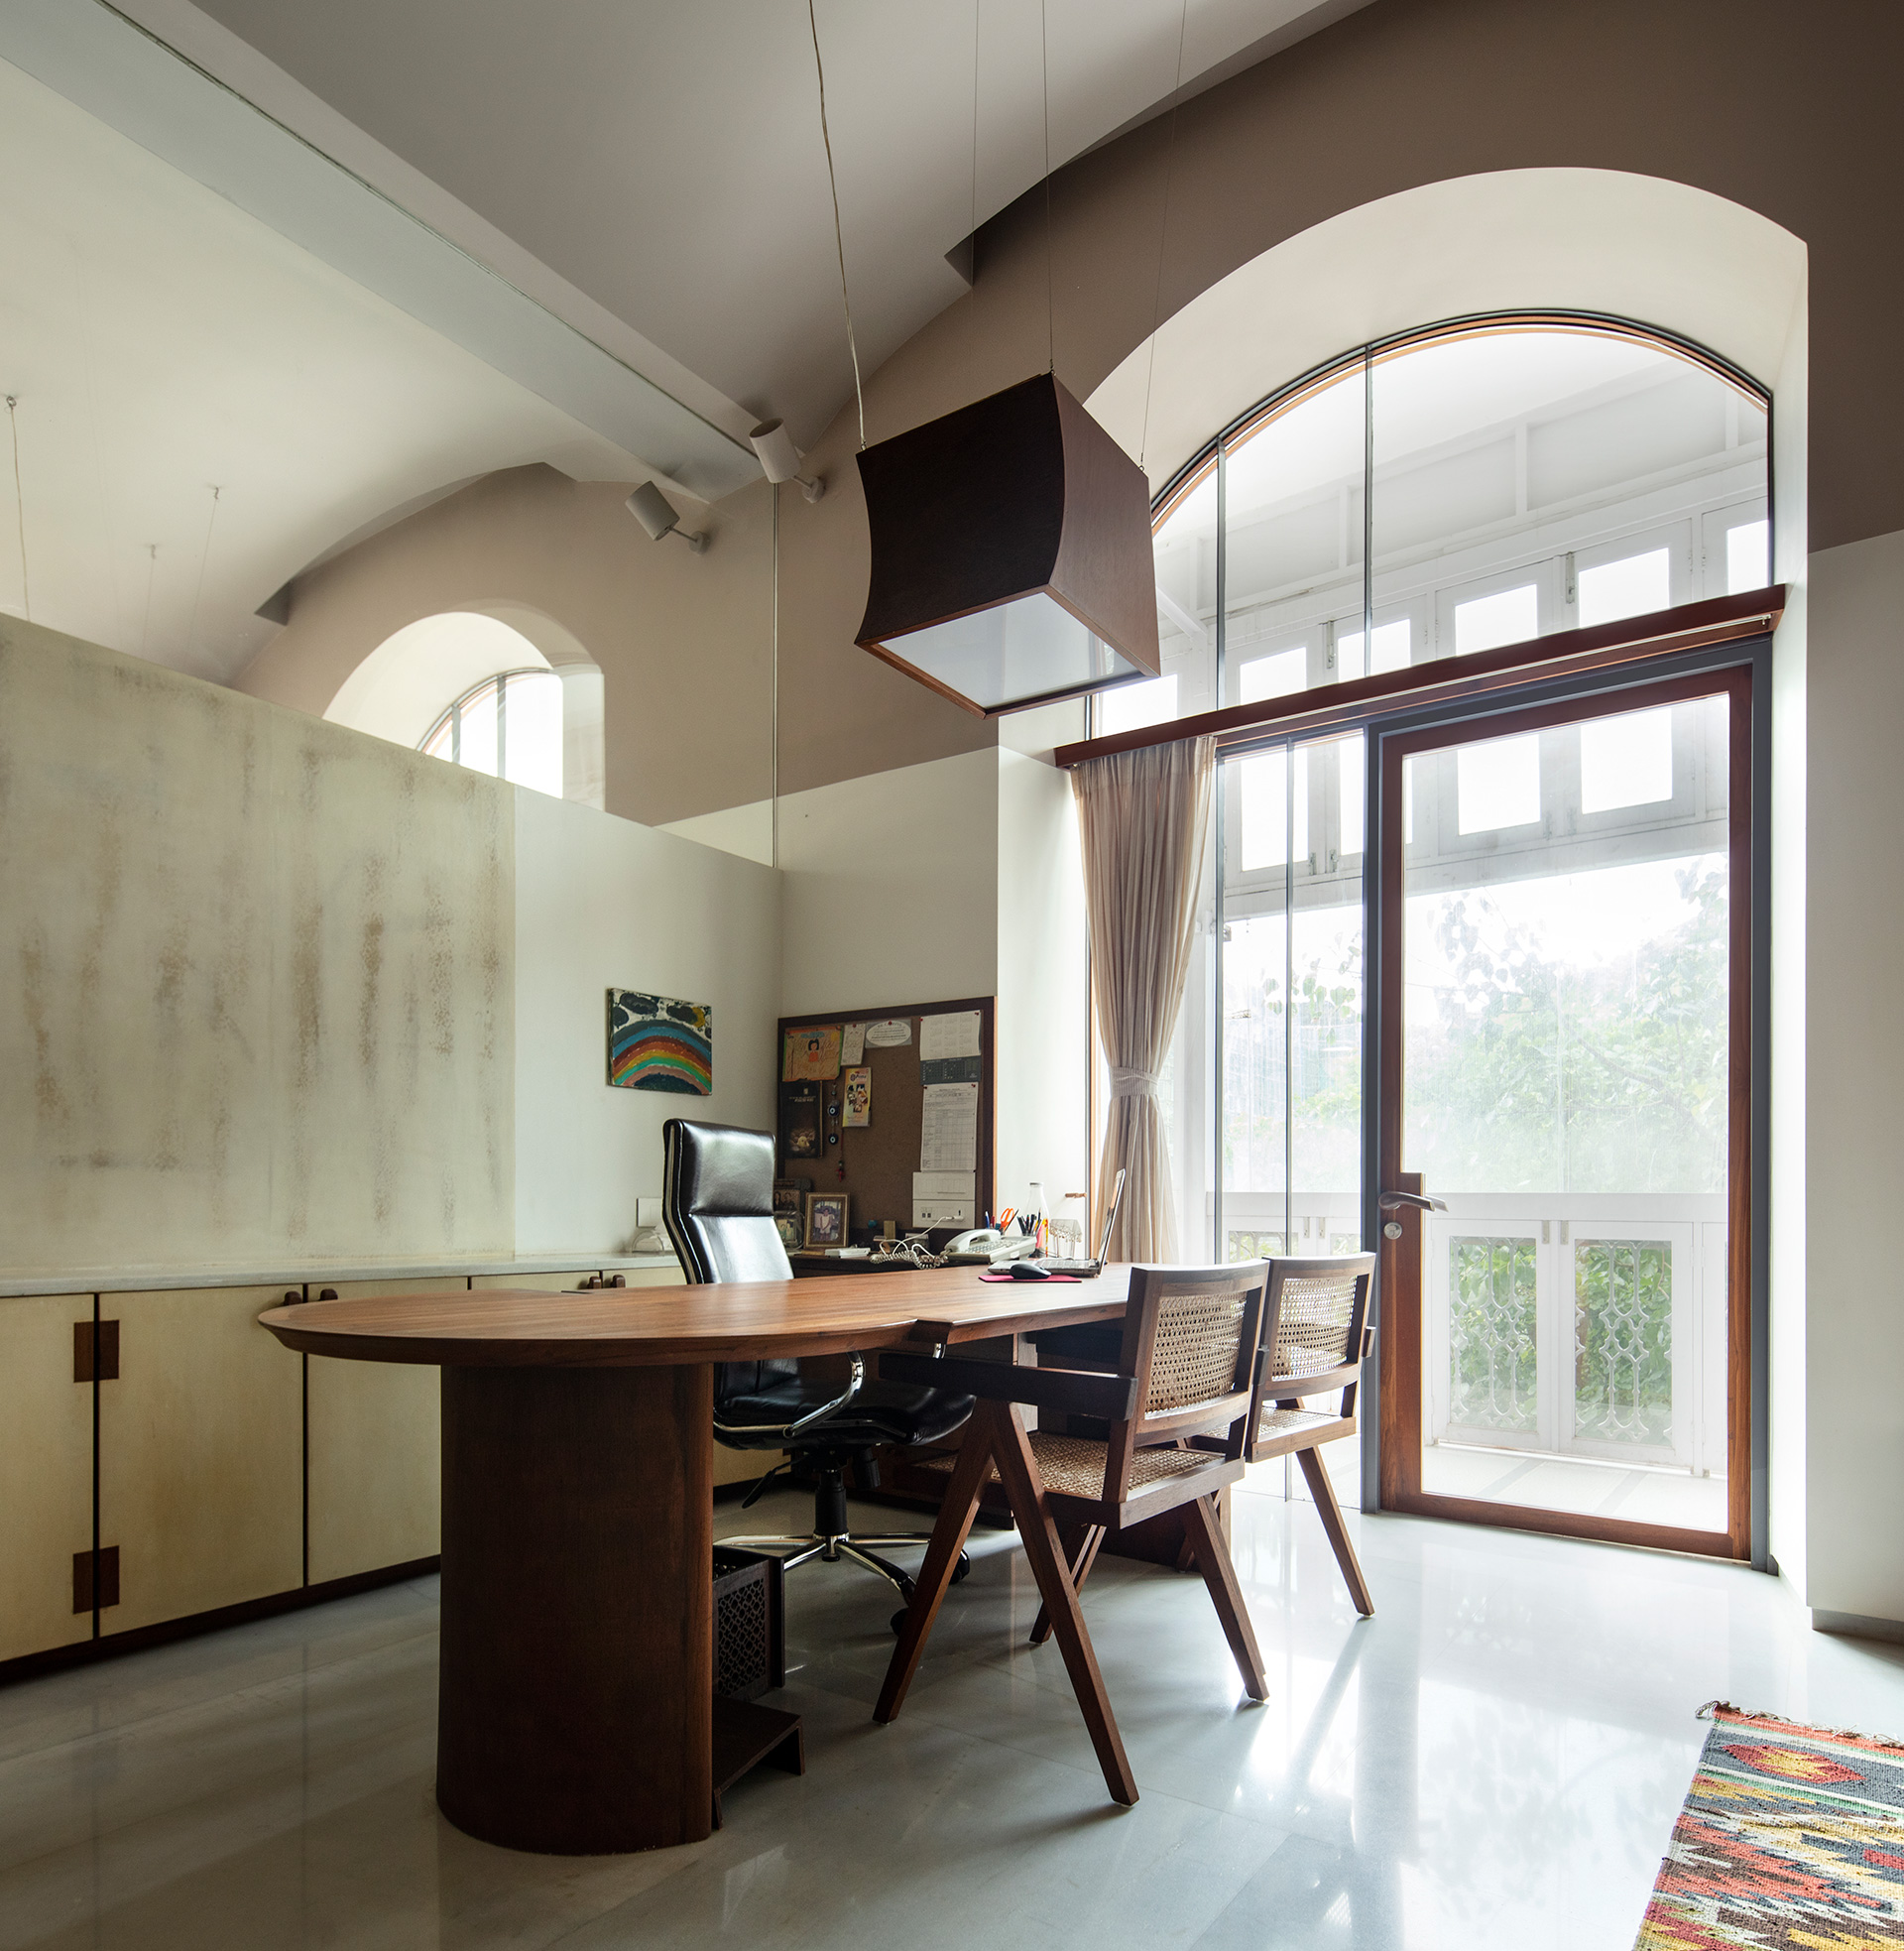 Main cabin opening out to the verandah | Samira Rathod Design Atelier | Mumbai | STIRworld